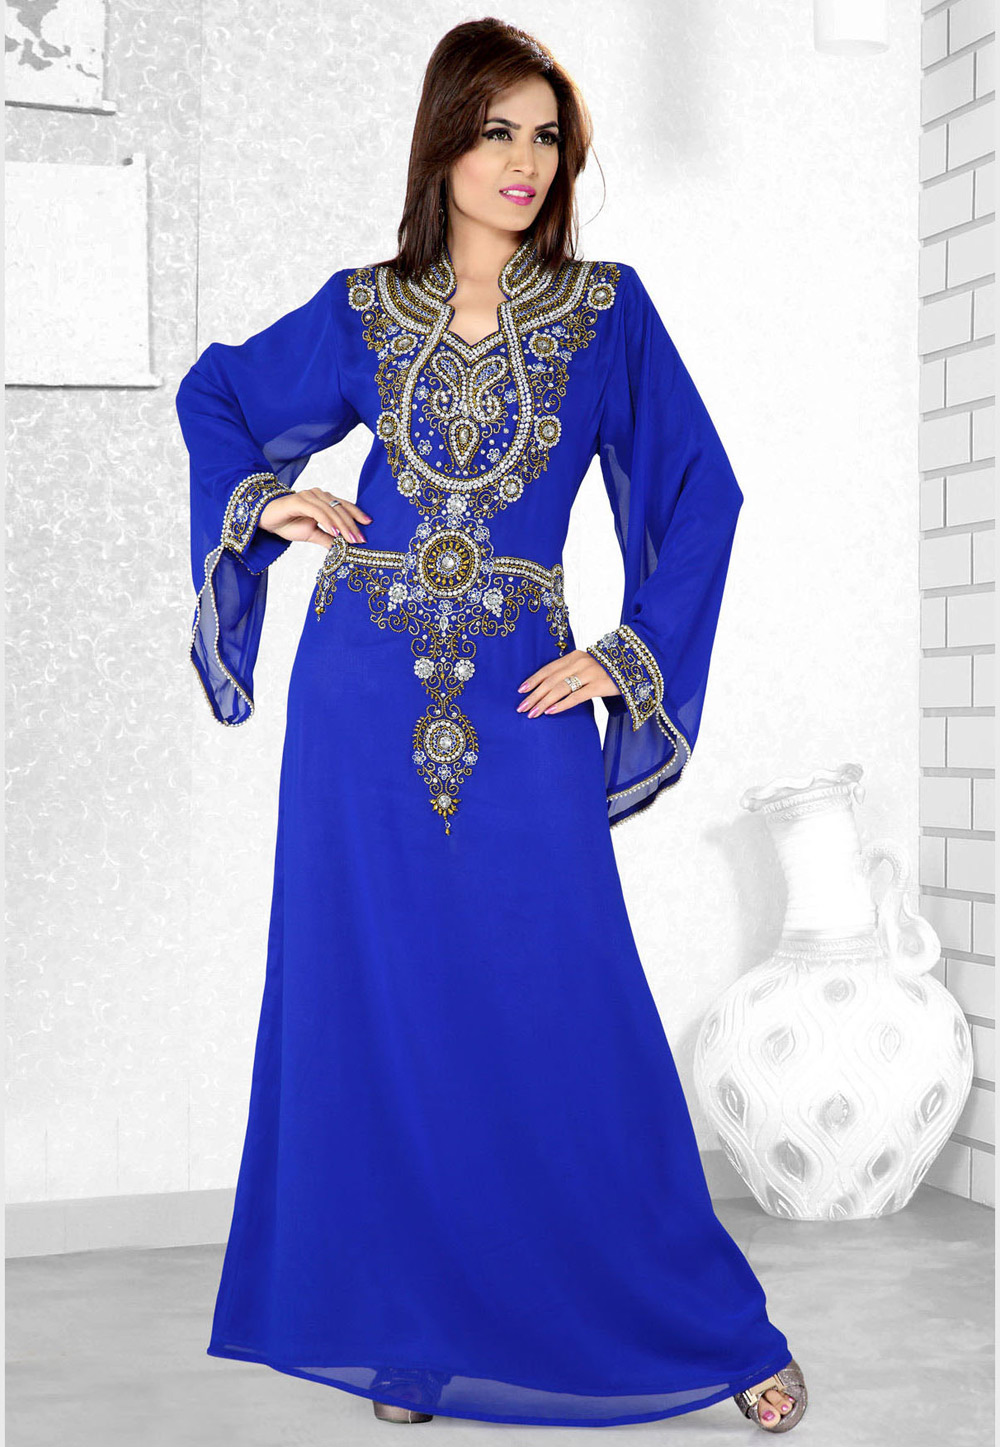 Blue Faux Georgette Embroidered Readymade Kaftan 194108